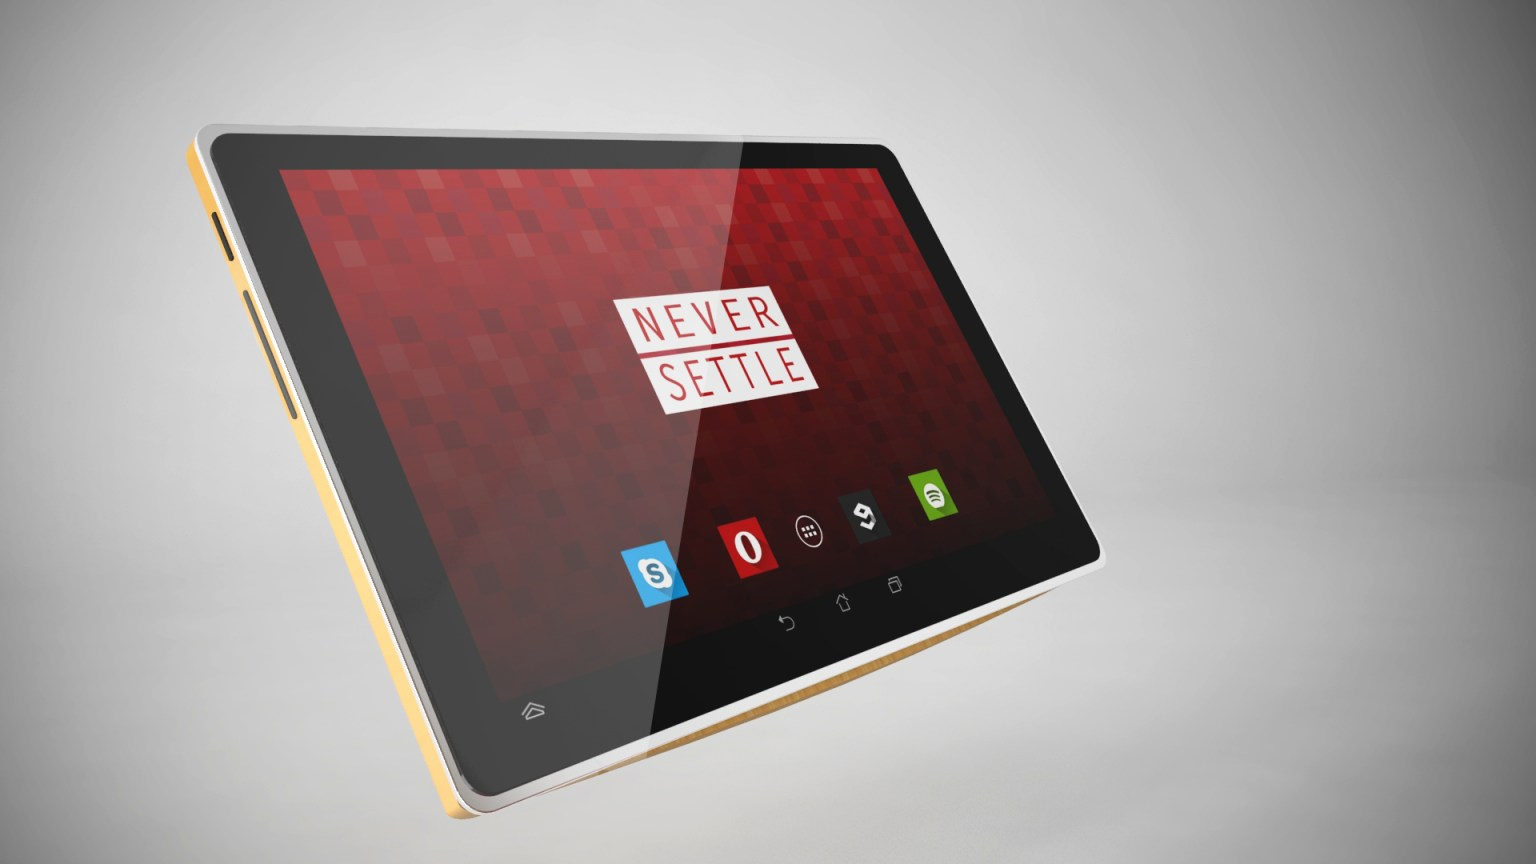 OnePlus Enters The Tablet Market